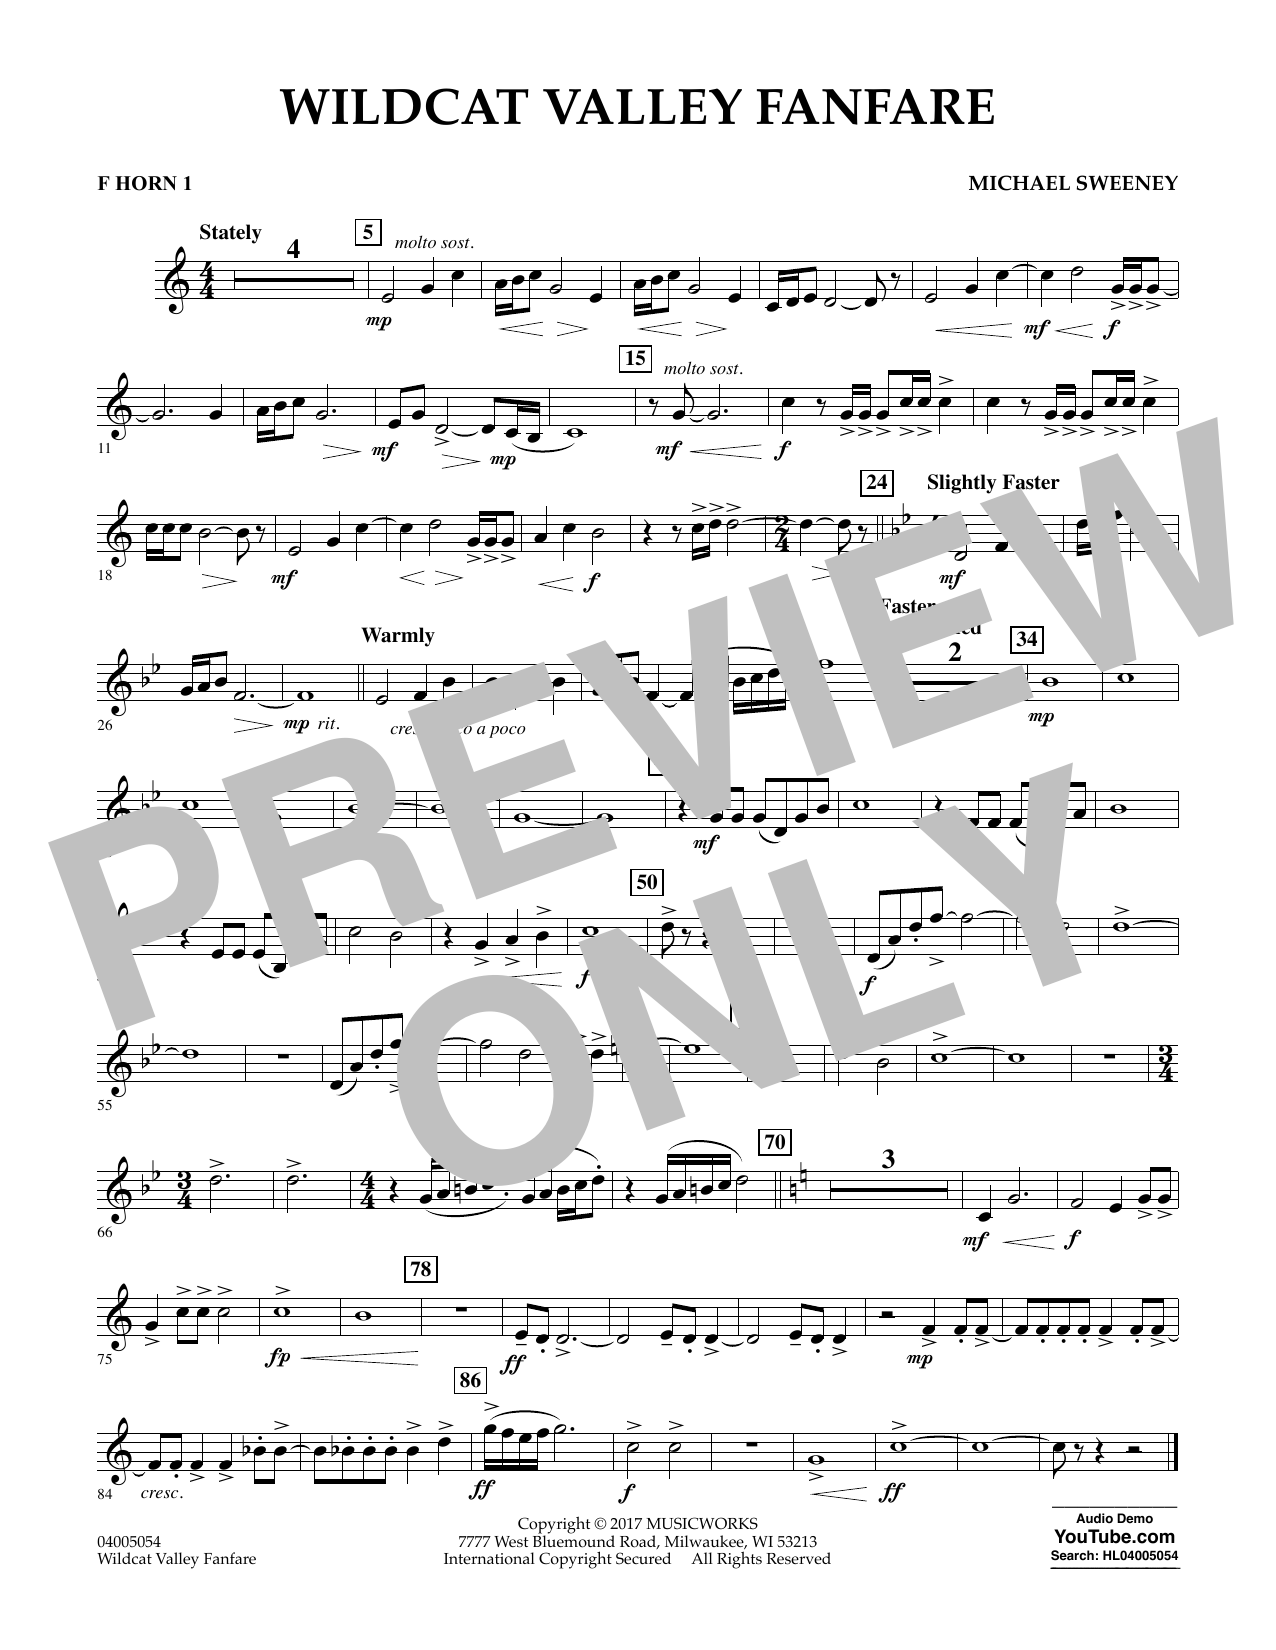 Michael Sweeney Wildcat Valley Fanfare - F Horn 1 sheet music notes and chords. Download Printable PDF.